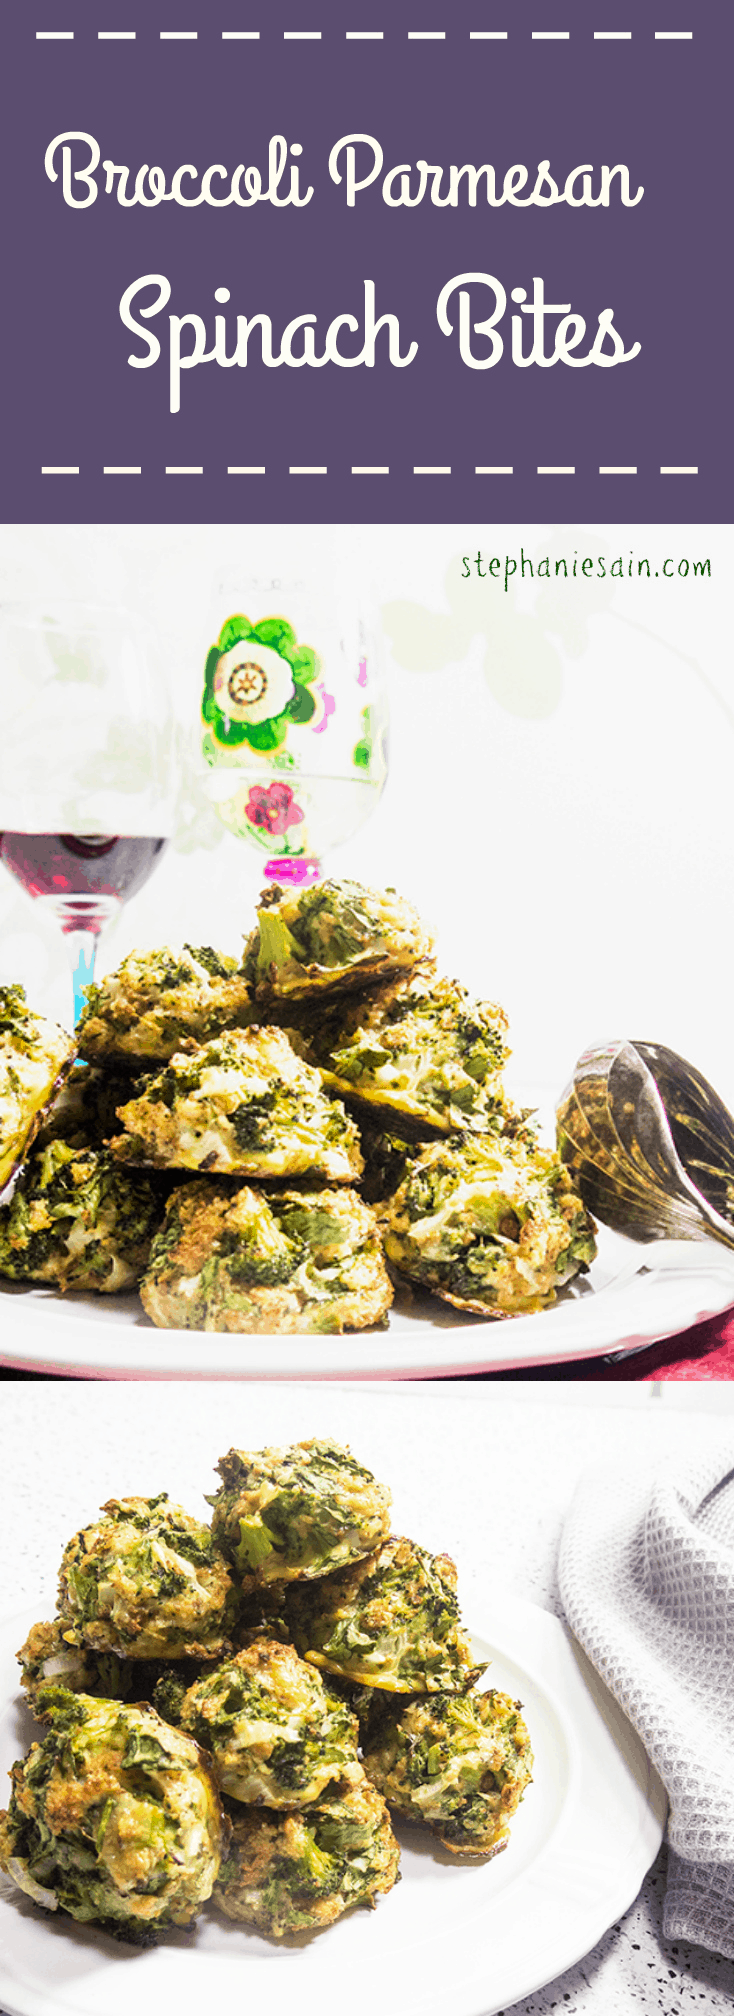 Broccoli Parmesan Spinach Bites are a tasty, healthy, snack or appetizer that are vegetarian and gluten free.